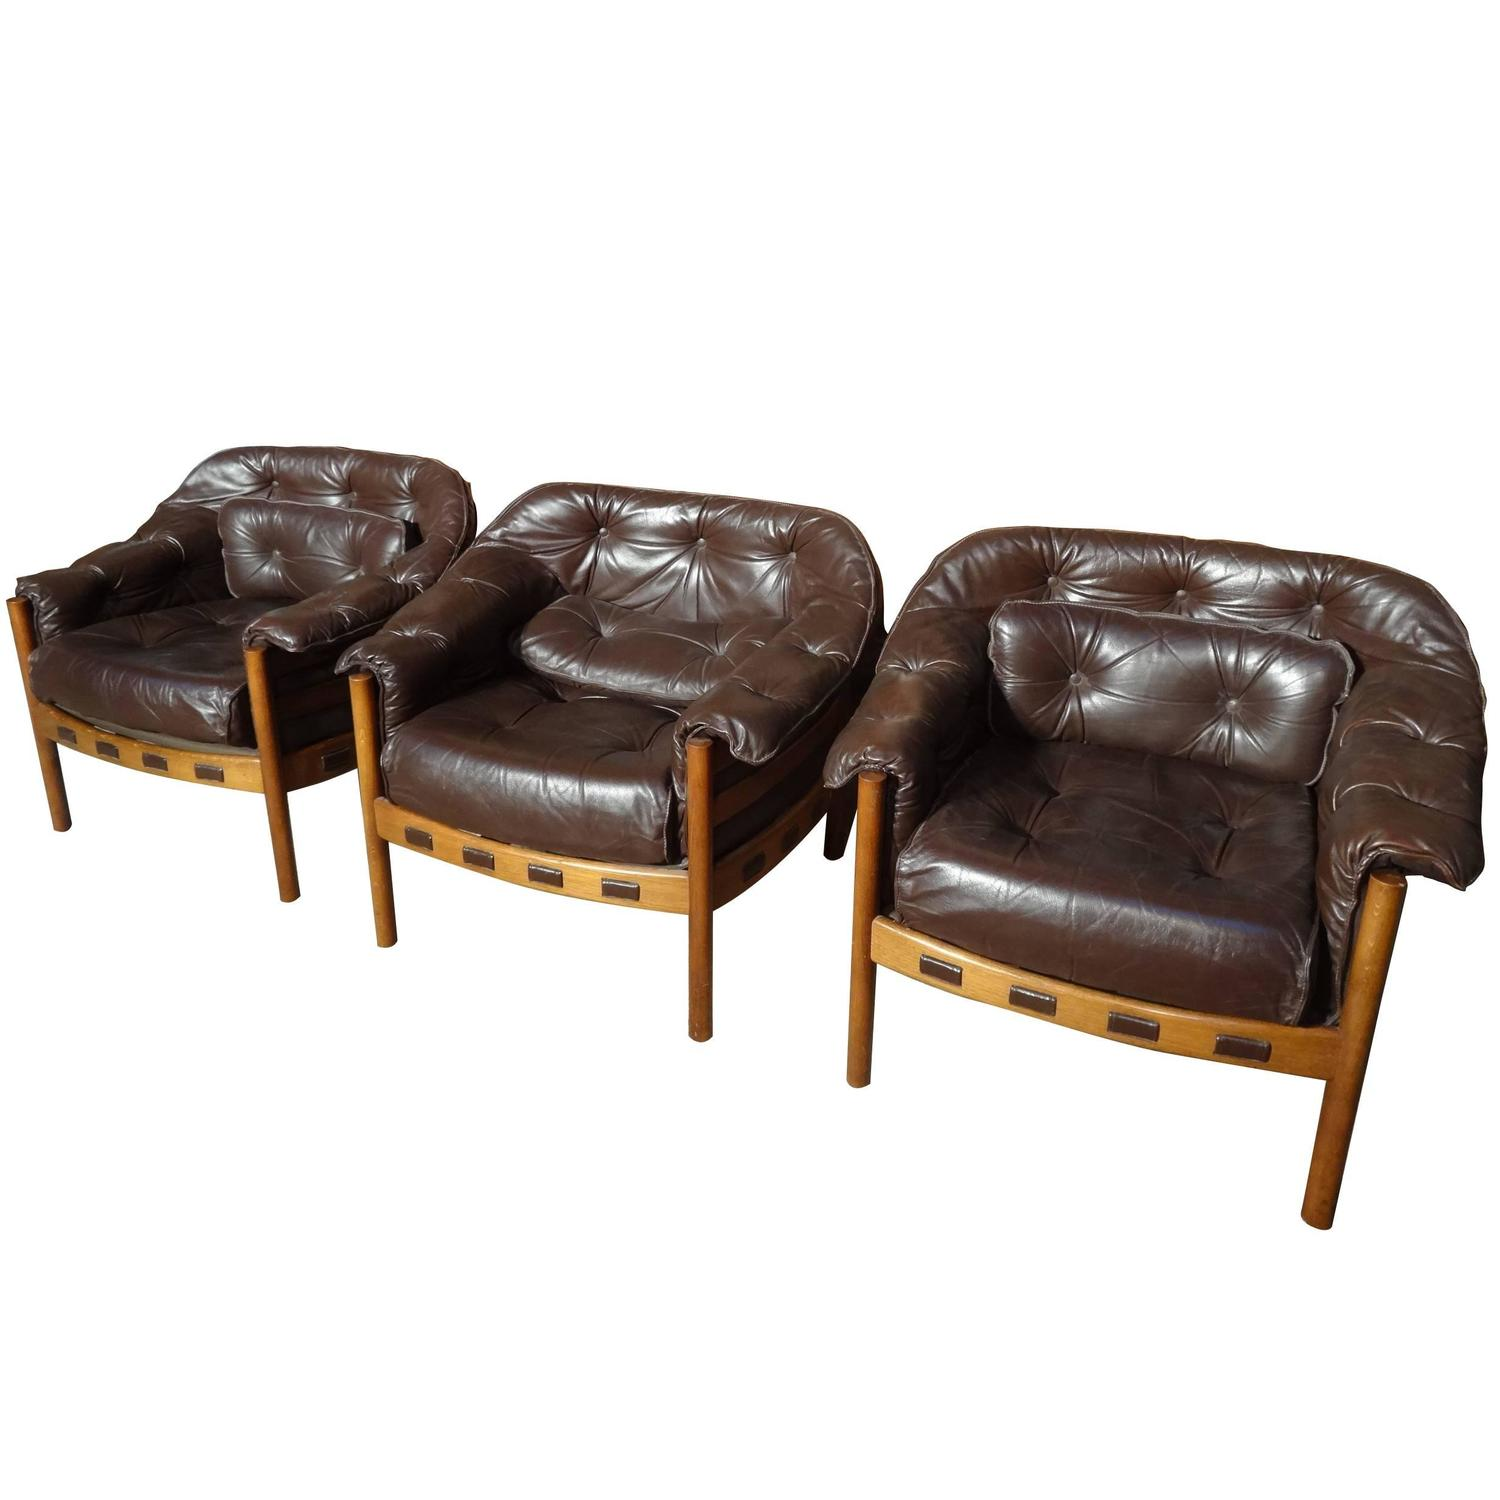 Most Sought After Antiques: Sought After Rare Danish Arne Norell Brown Leather Chairs